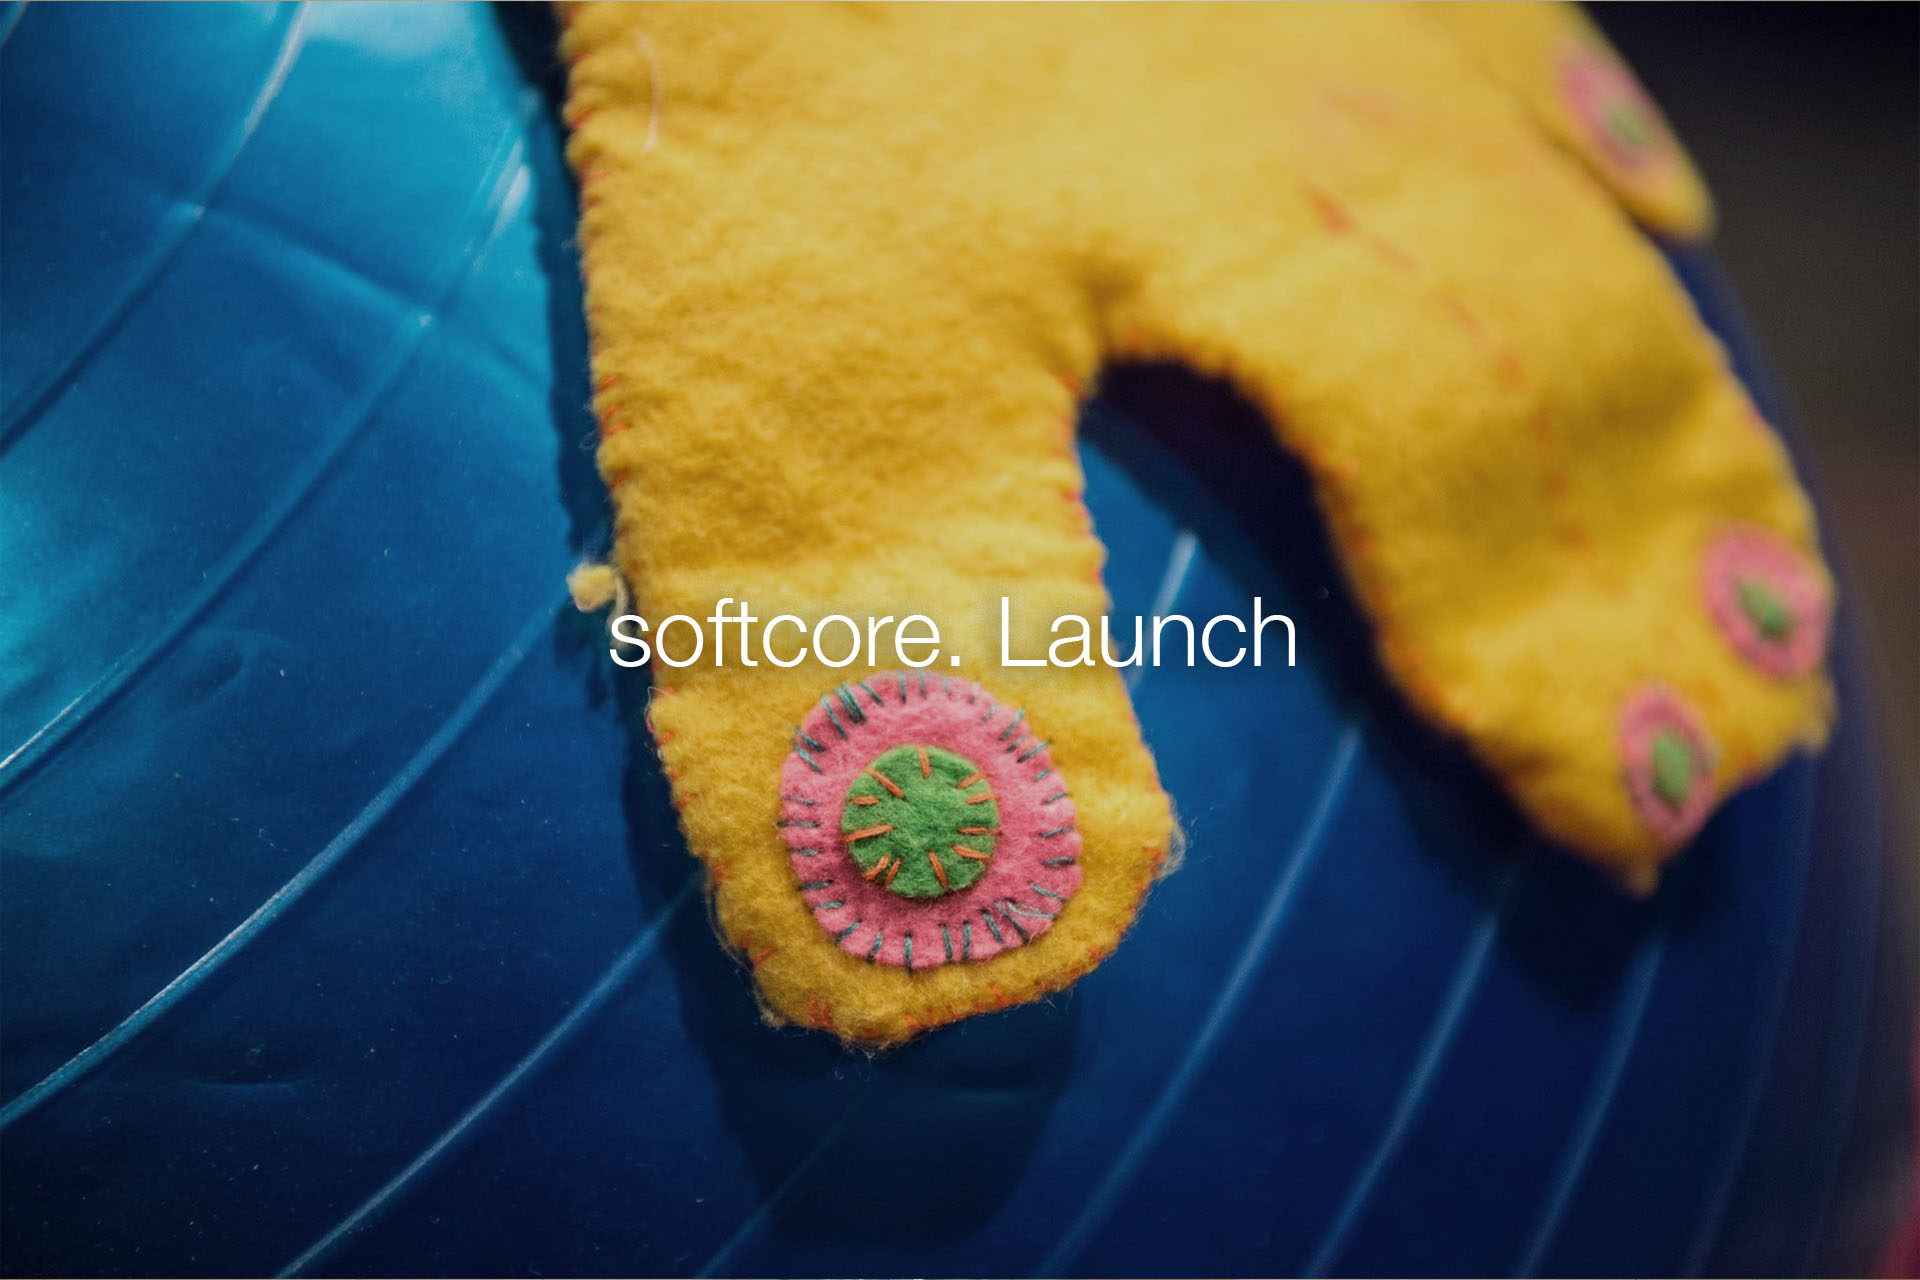 SoftcoreLaunch.jpg